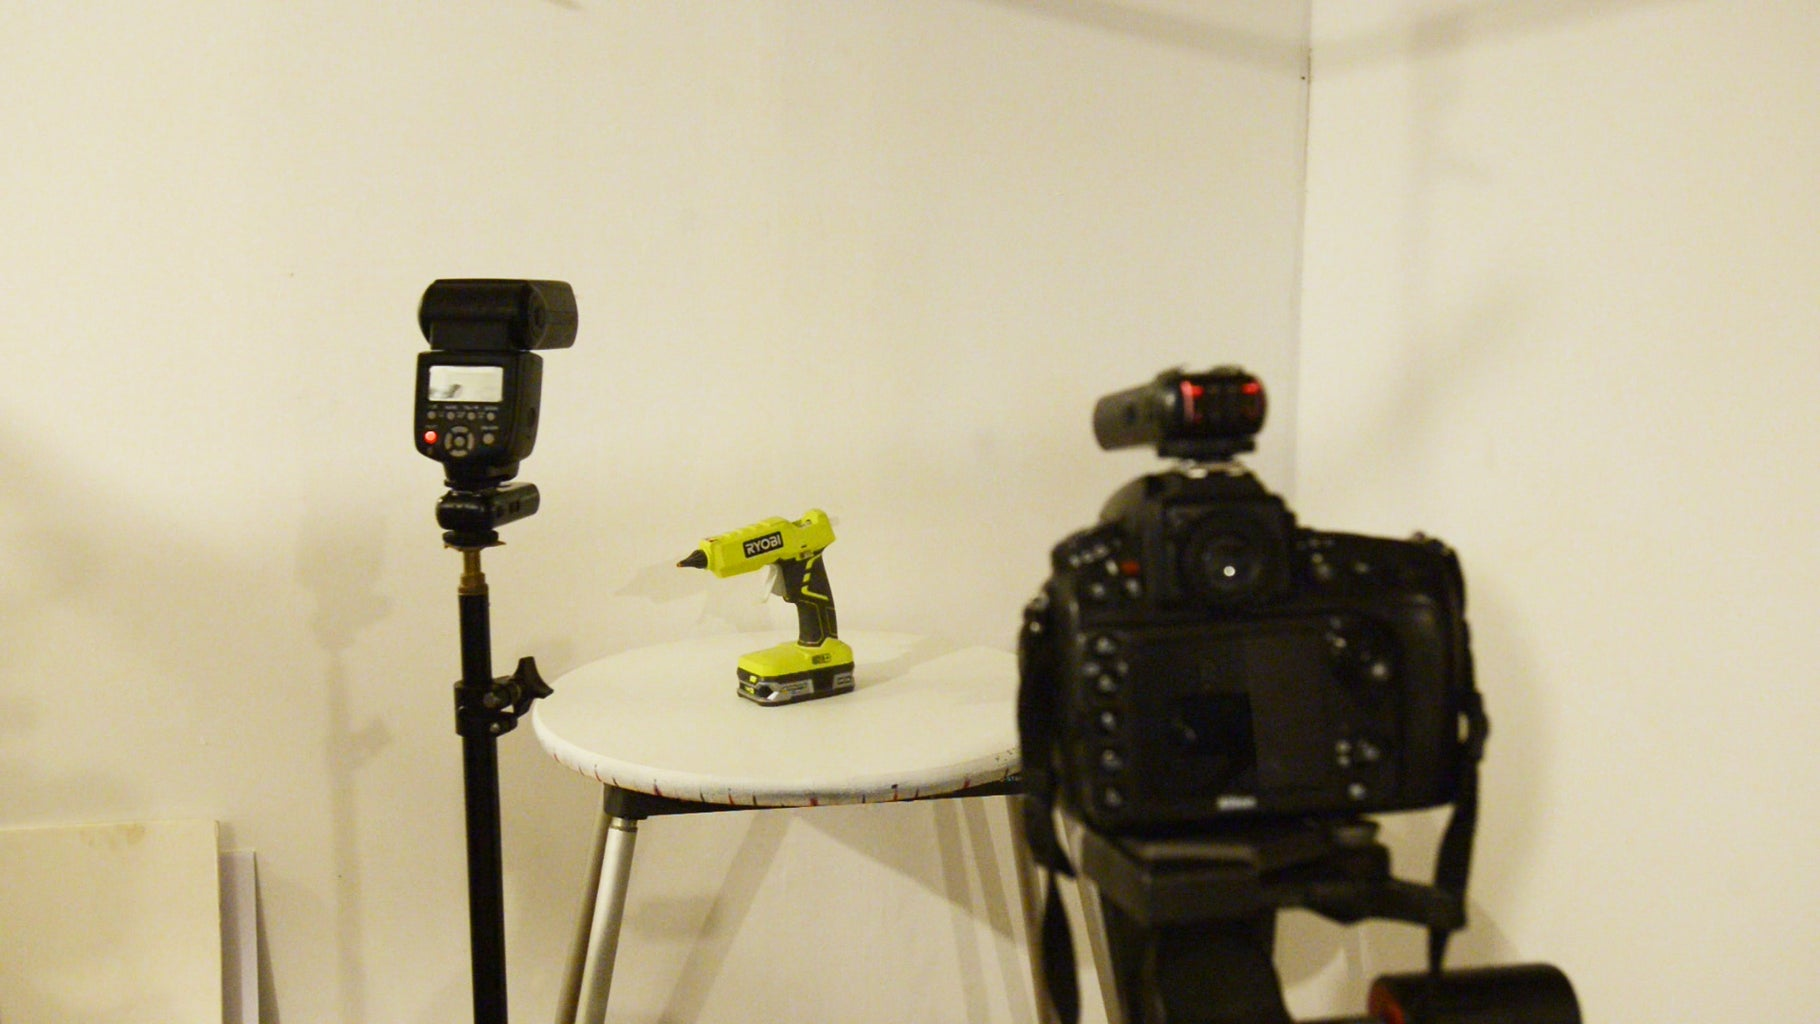 Light Only the Background (Primarily Used for 360 Product Photography)